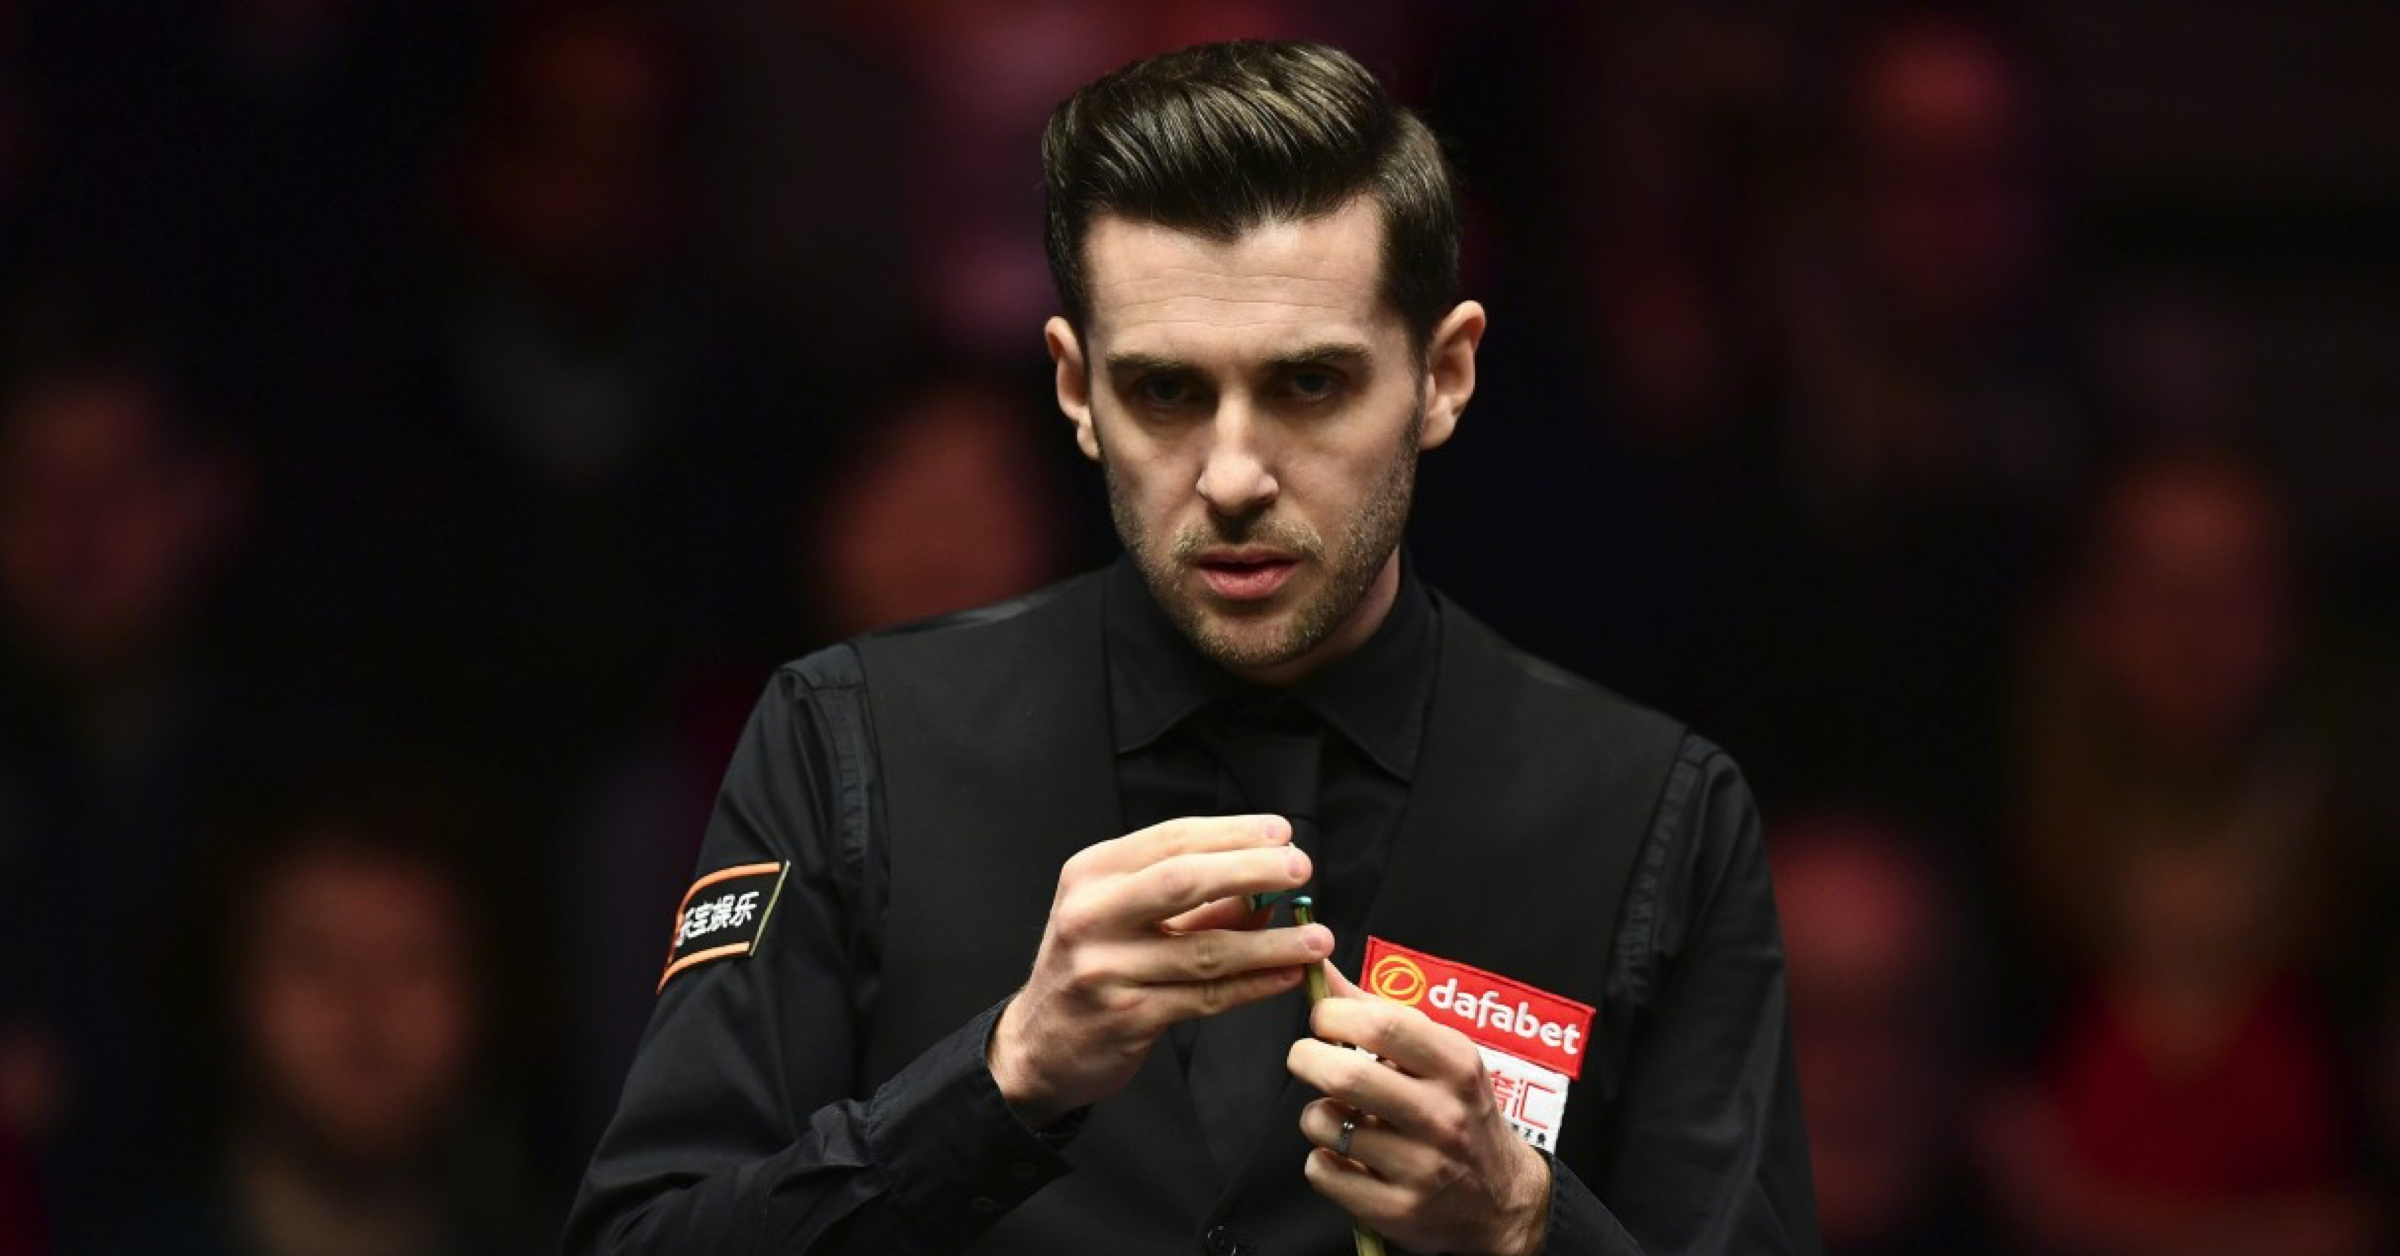 WATCH: Mark Selby Pulls Off Shot Being Tipped For Shot Of The Decade